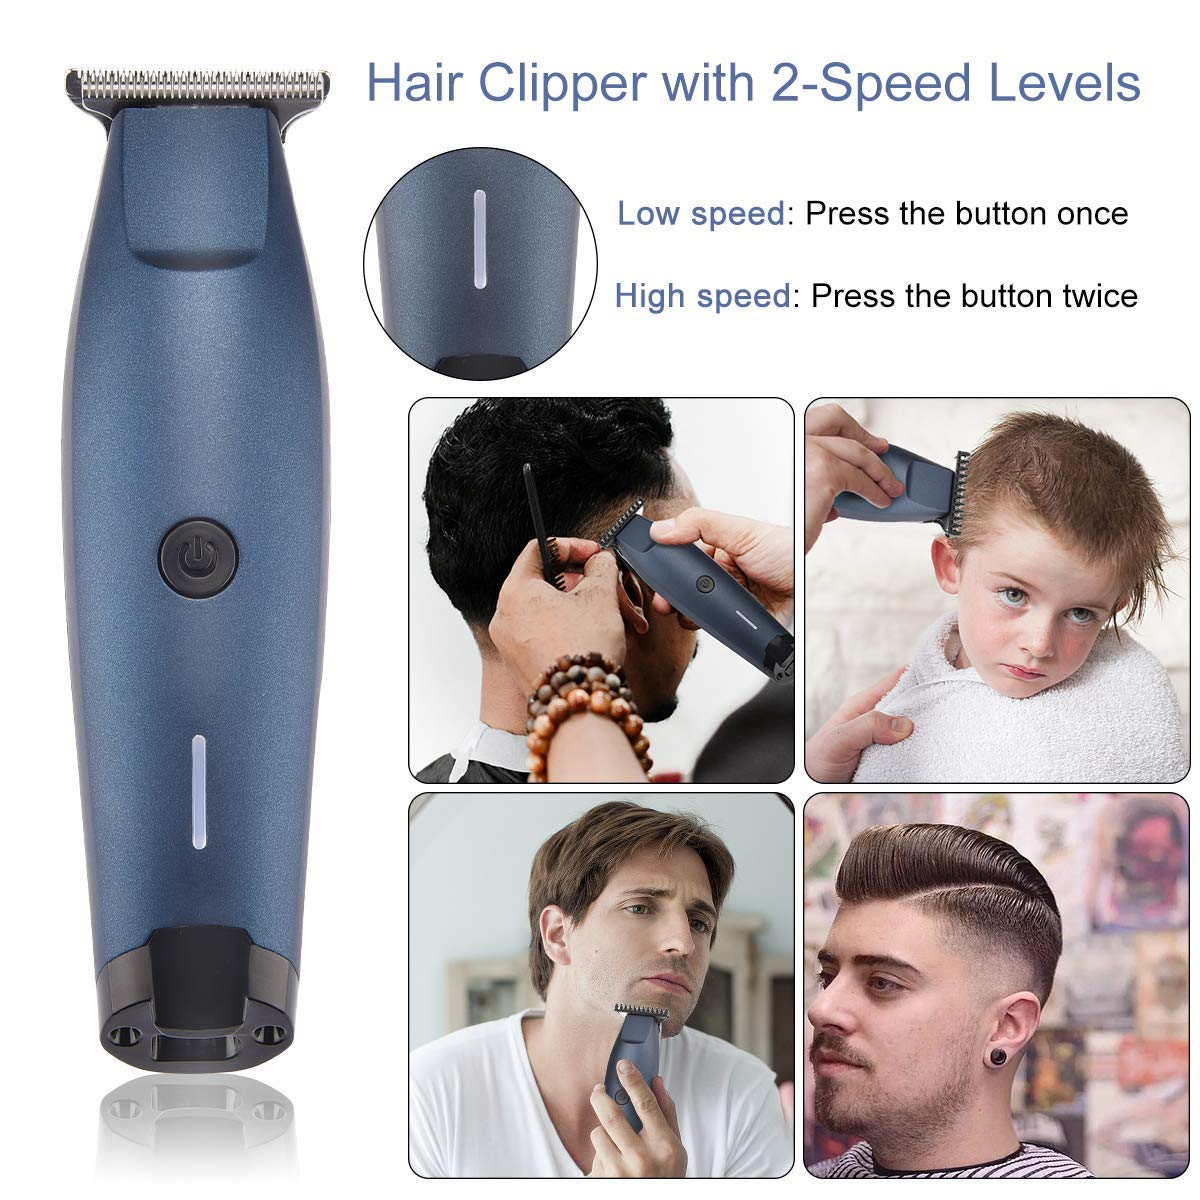 Professional Hair Clipper, HONGNAL Cordless Pro Hair Cutting Kit Rechargeable Beard Trimmer Clippers with 2 Speeds 3 Guide Combs for Face/Body Hair Groomer for Men/Women